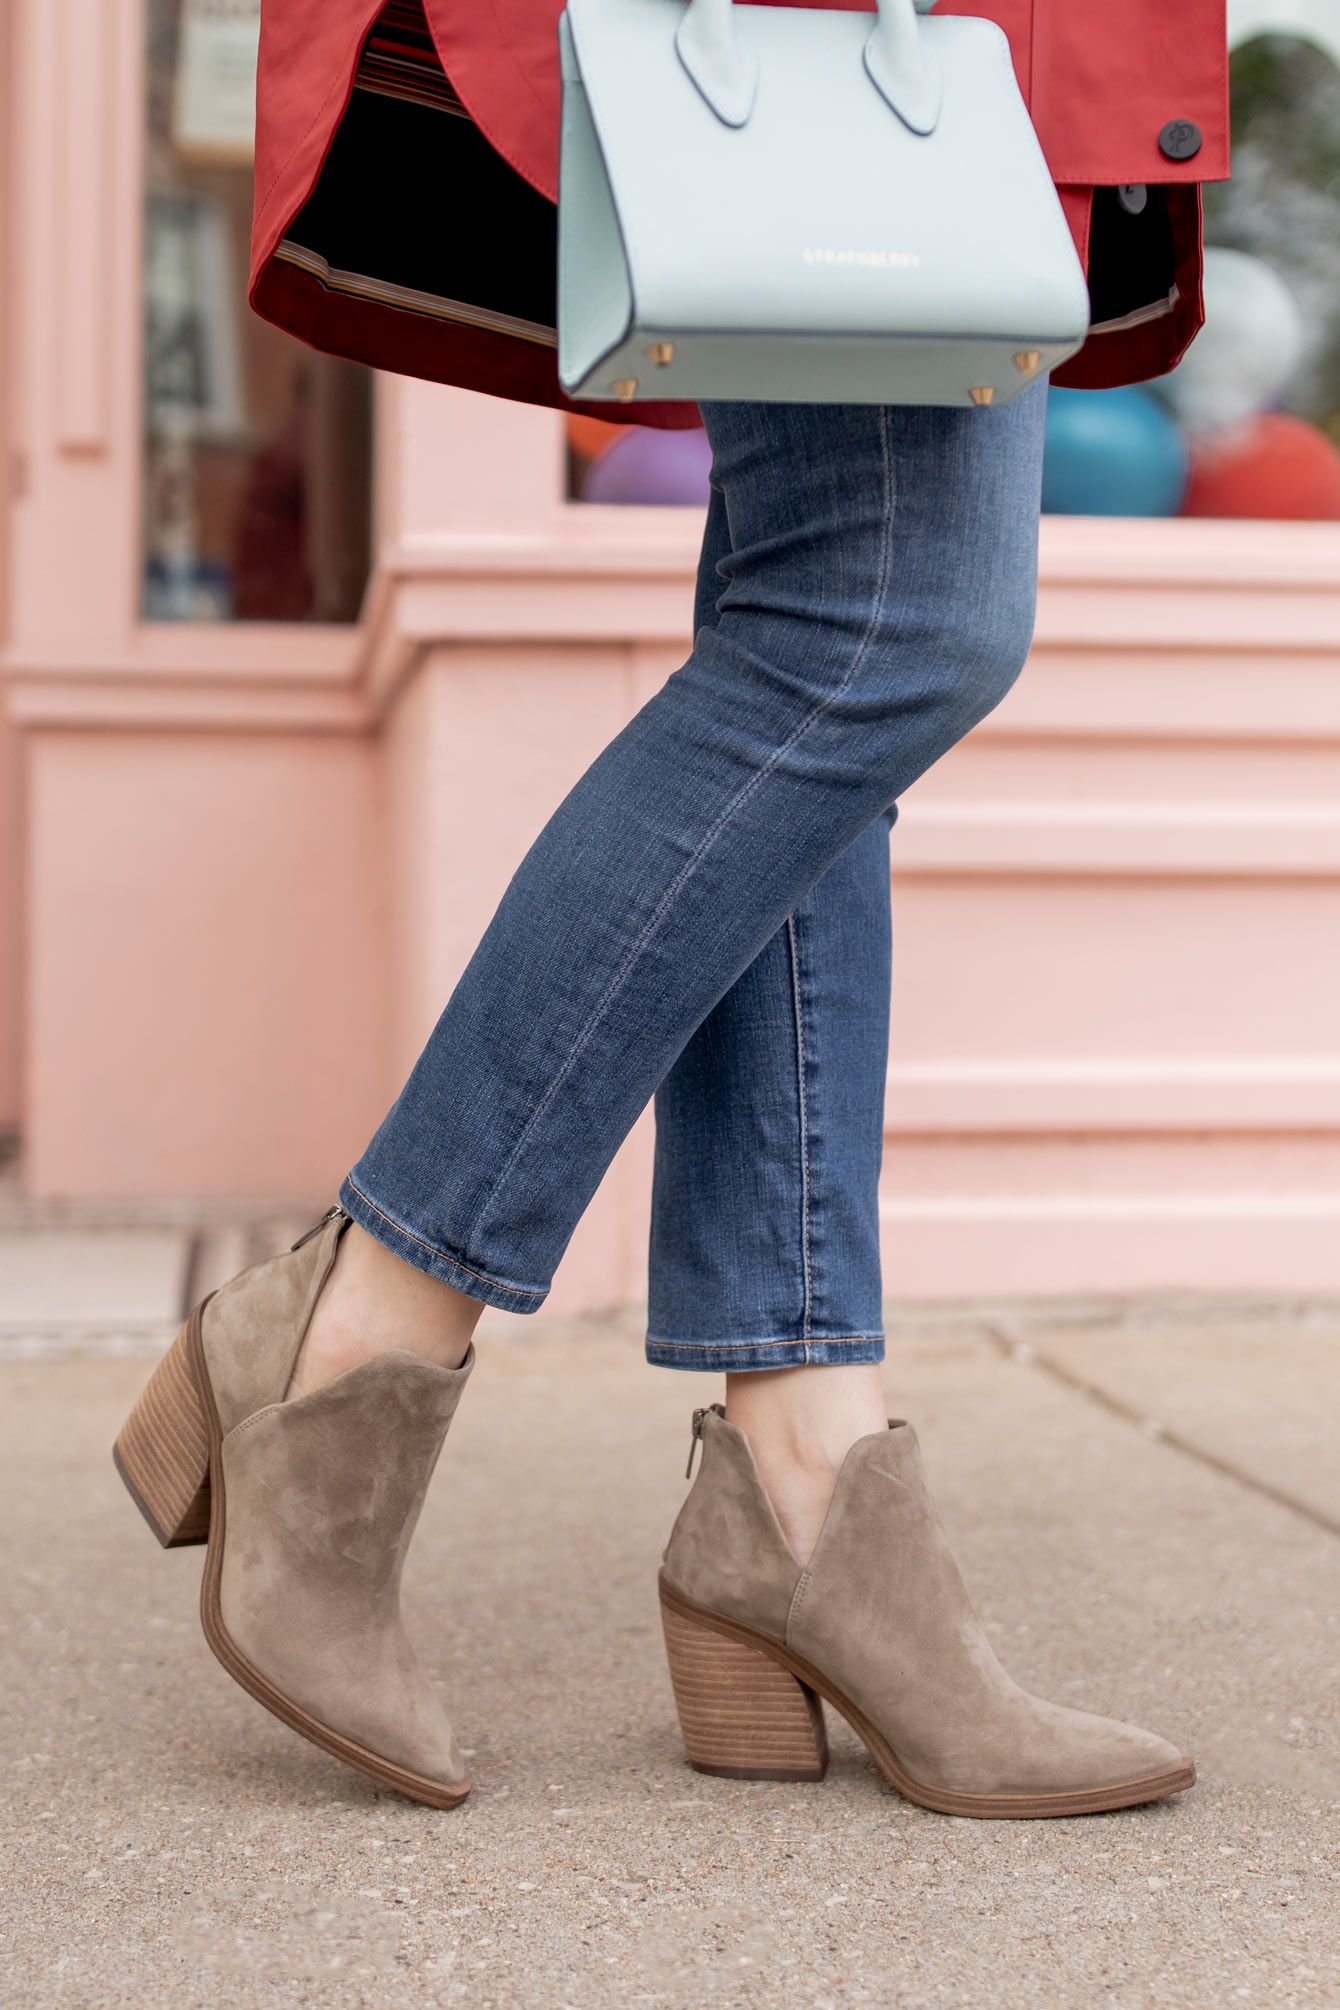 Vince Camuto Taupe Bootie Nordstrom Anniversary Sale